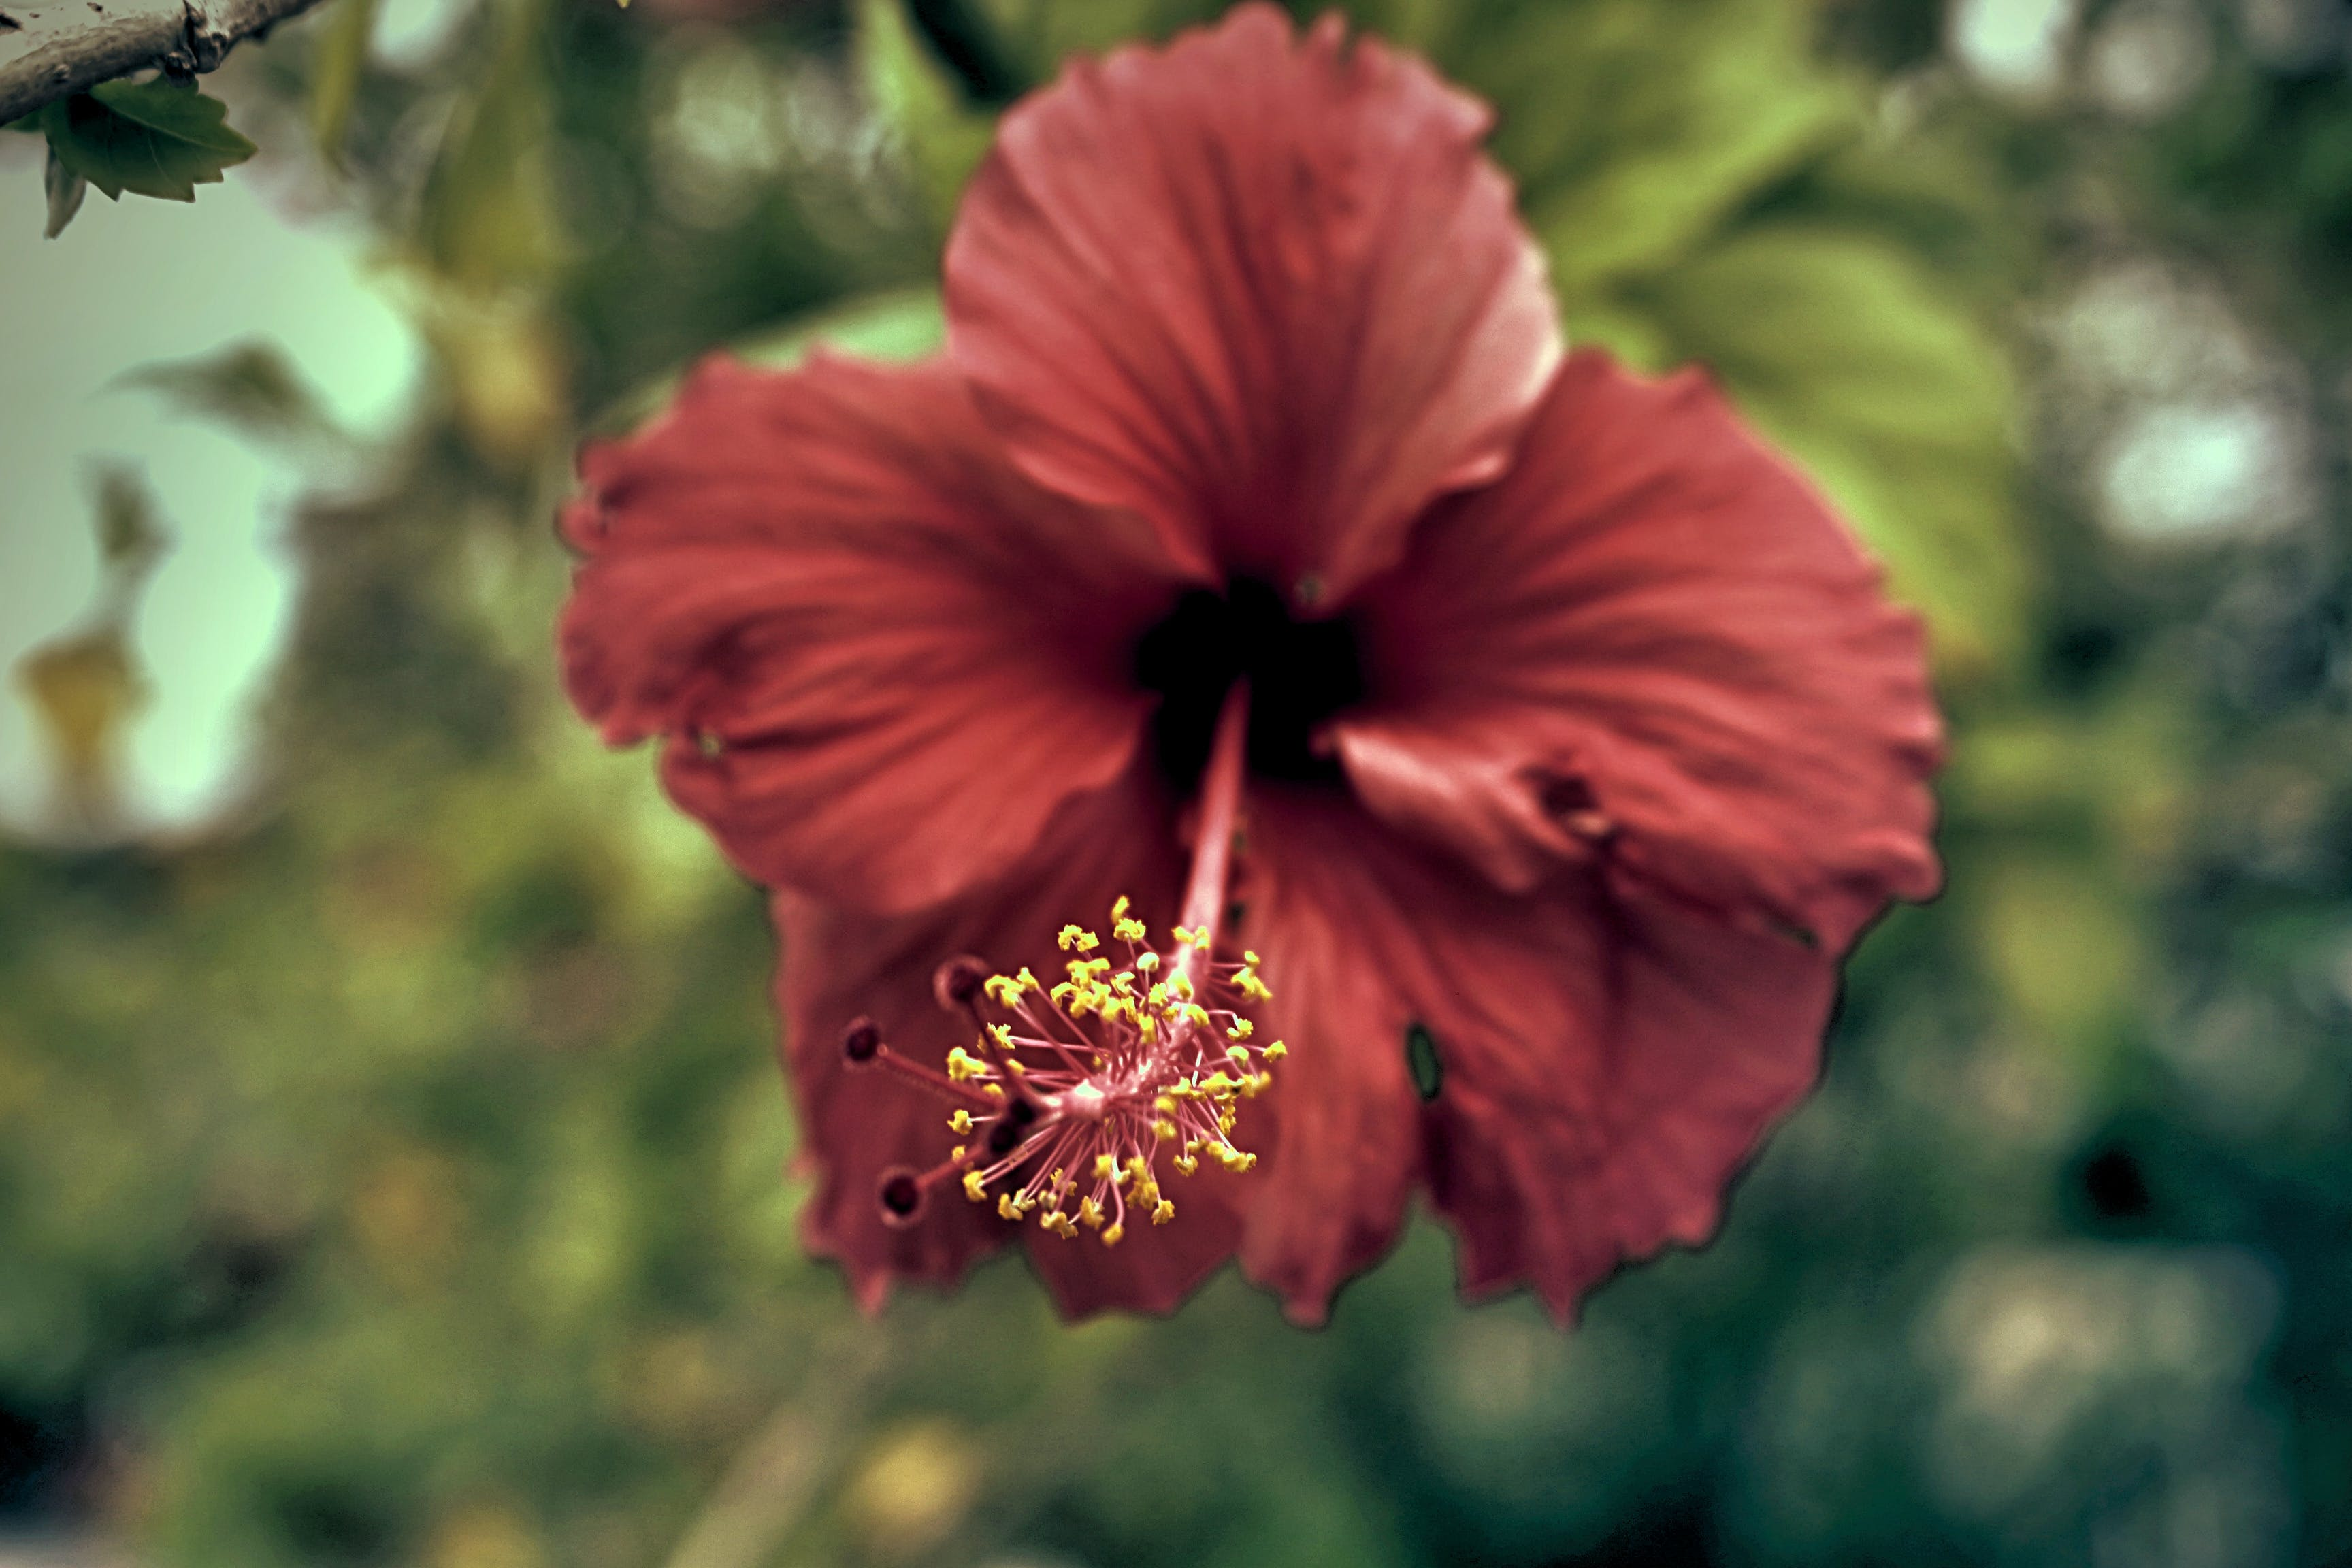 Red Hibiscus Flower in Closeup Photography